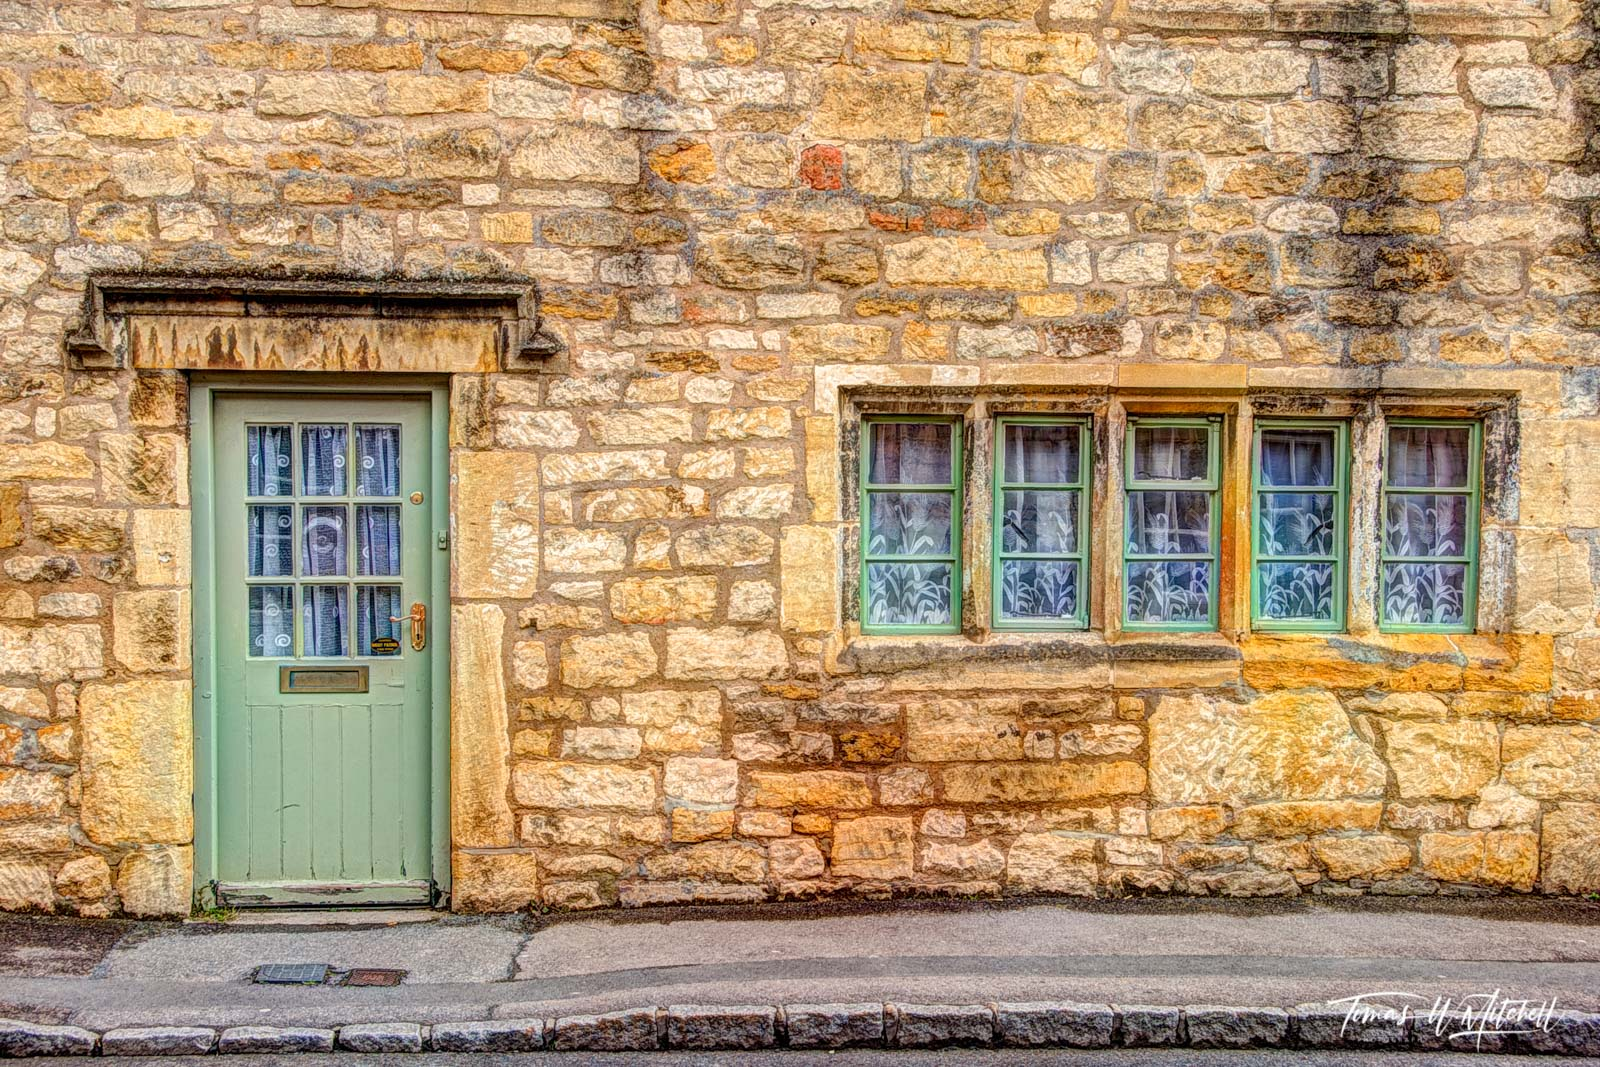 Limited Edition of 50 Museum Grade, Fine Art Prints. Walking through small villages in the Cotswolds was perfect for photographing...